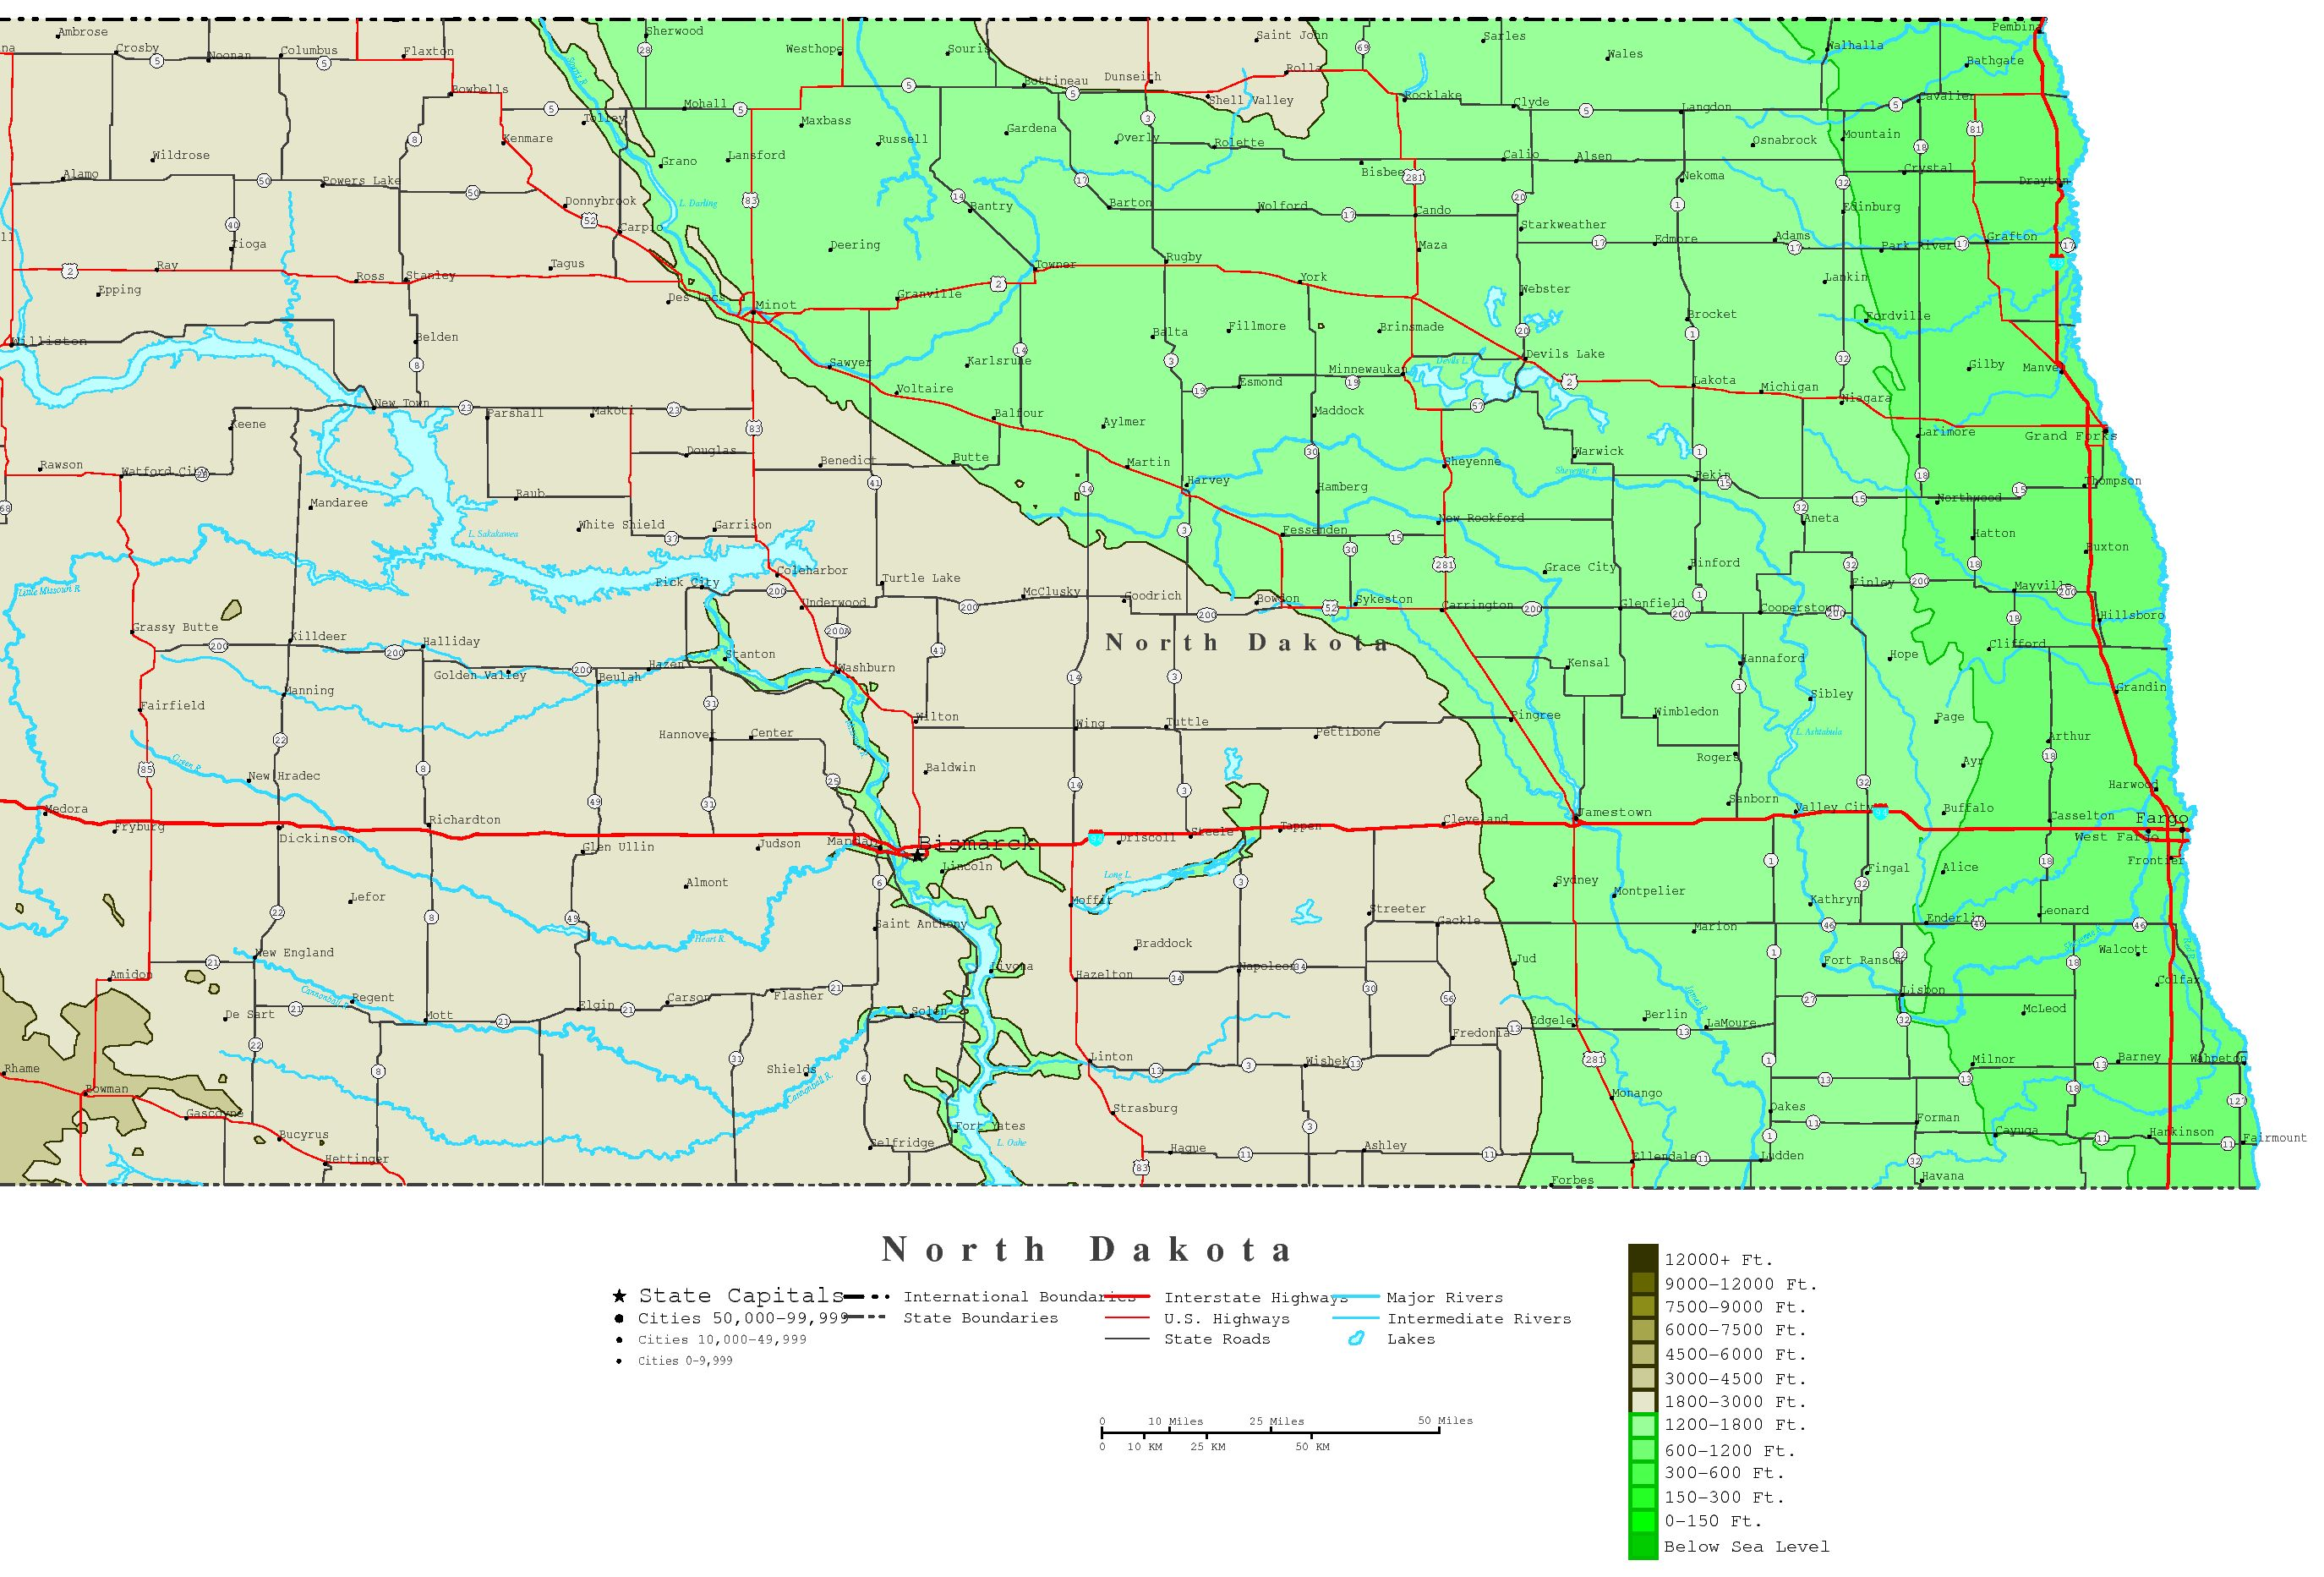 22 Beautiful North Dakota County Map With Cities | afputra.com